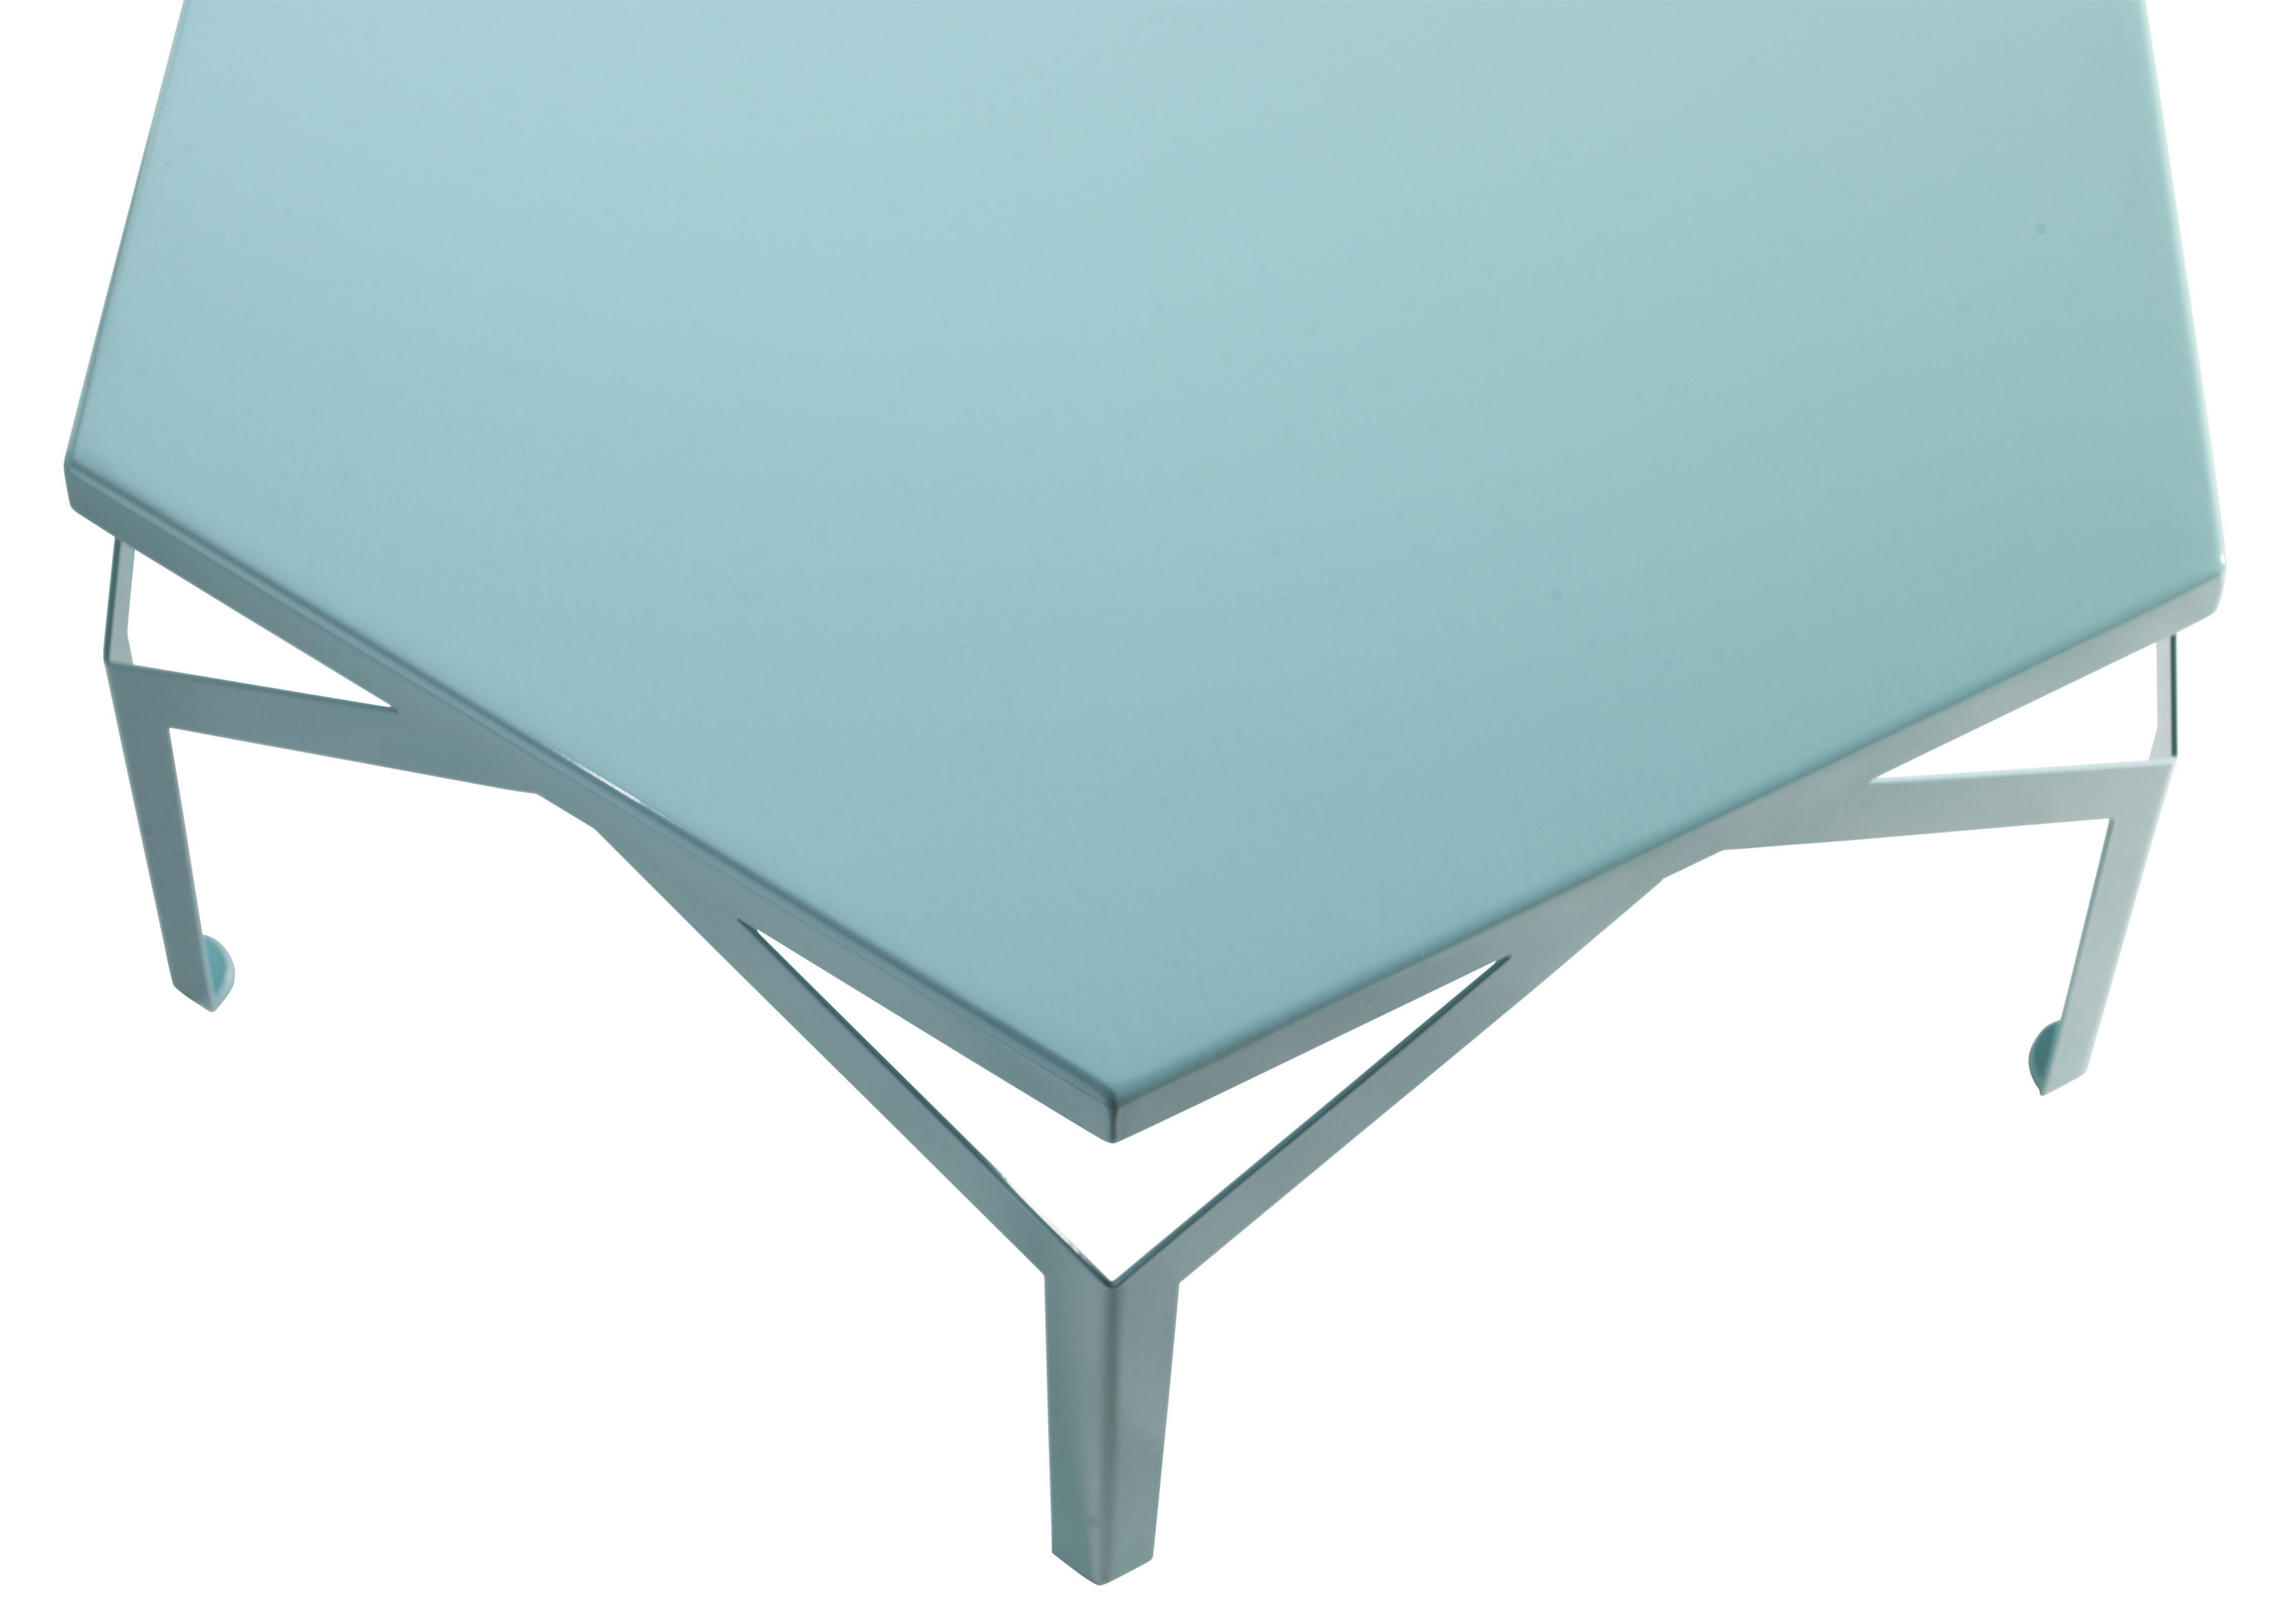 Fano coffee table h 30 5 cm x l 80 5 cm blue by for Coffee table 80 x 80